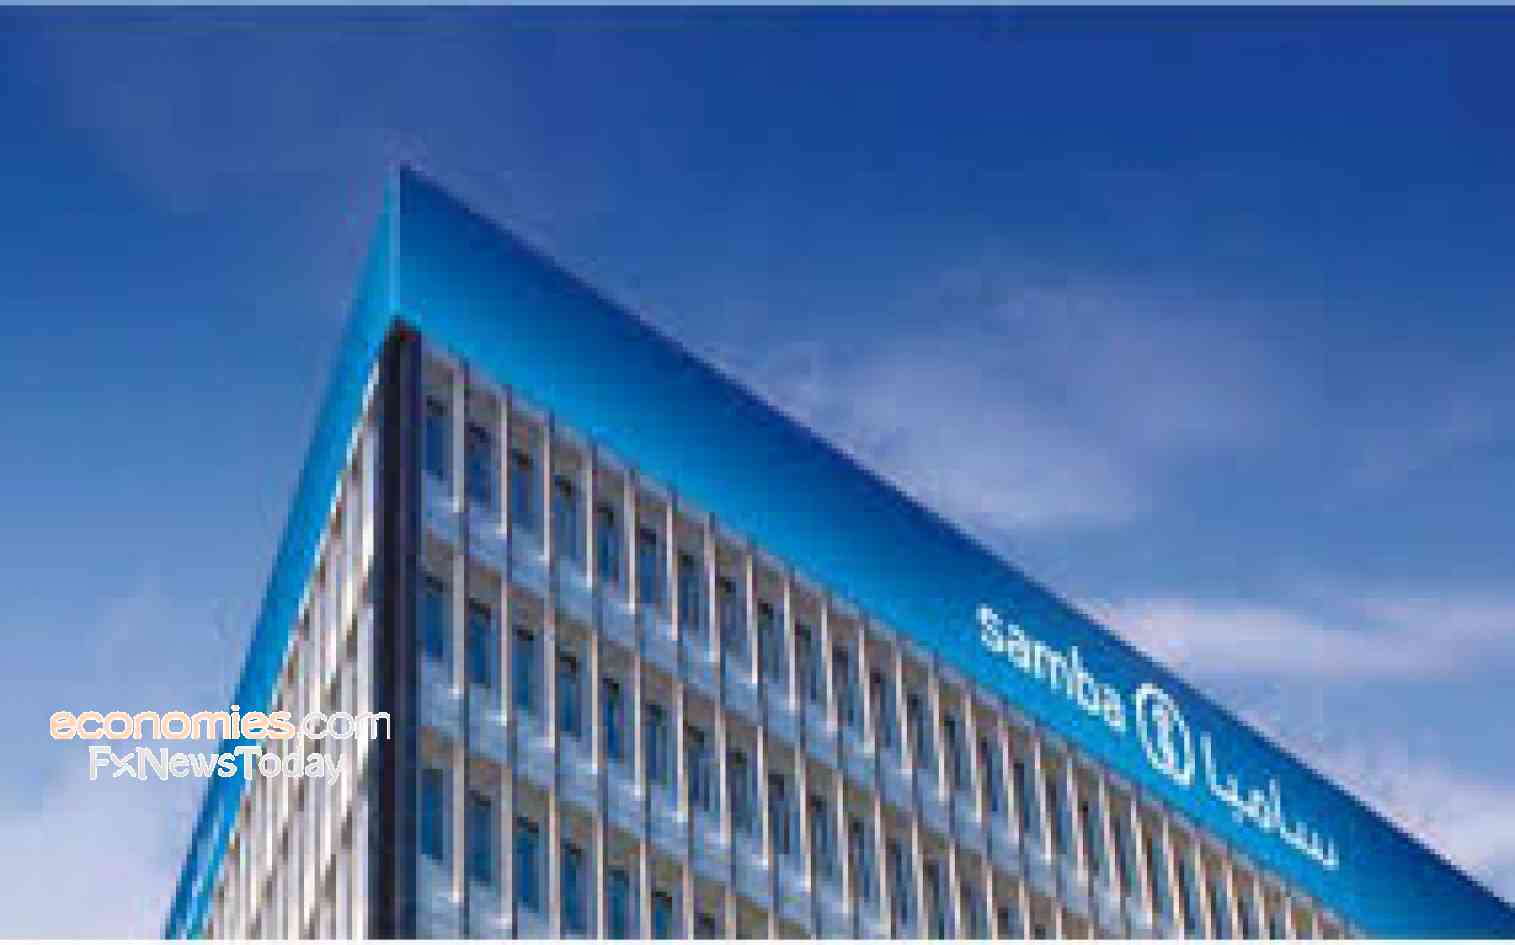 Samba gets shareholders' nod on SAR2.3 billion dividends for H2